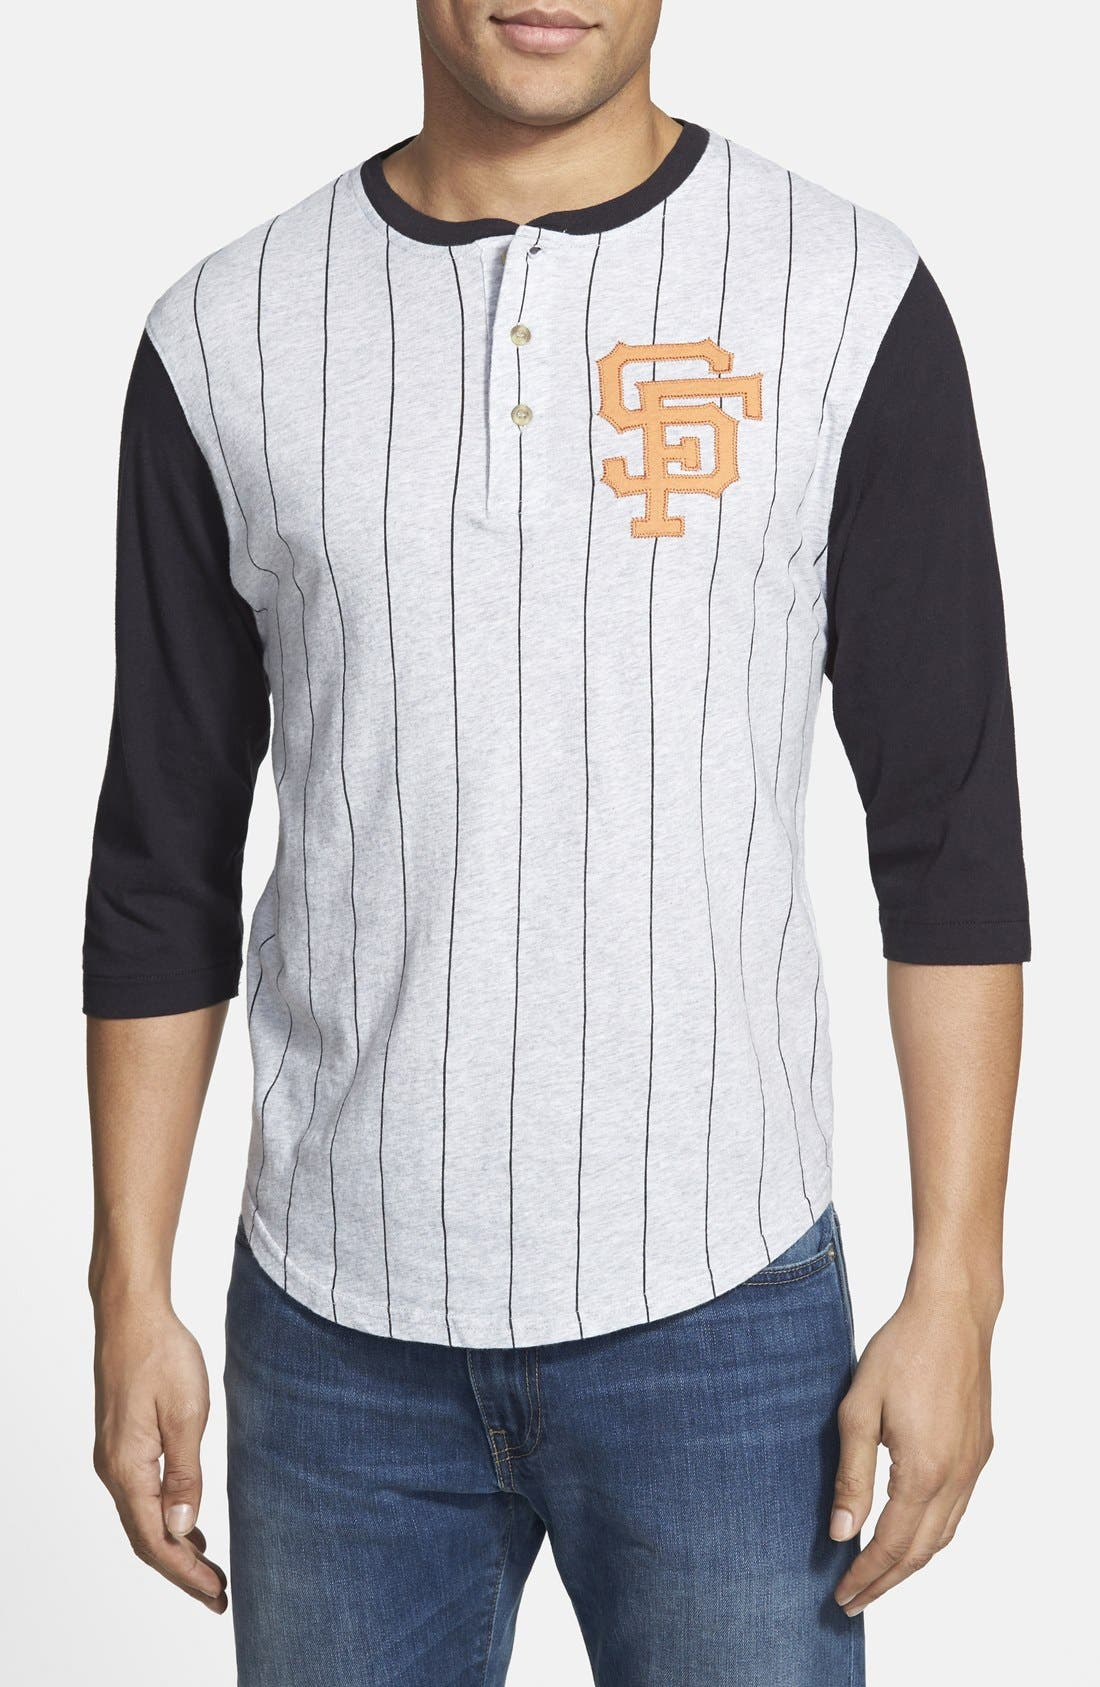 Red Jacket 'San Francisco Giants - Double Play' Jersey Henley